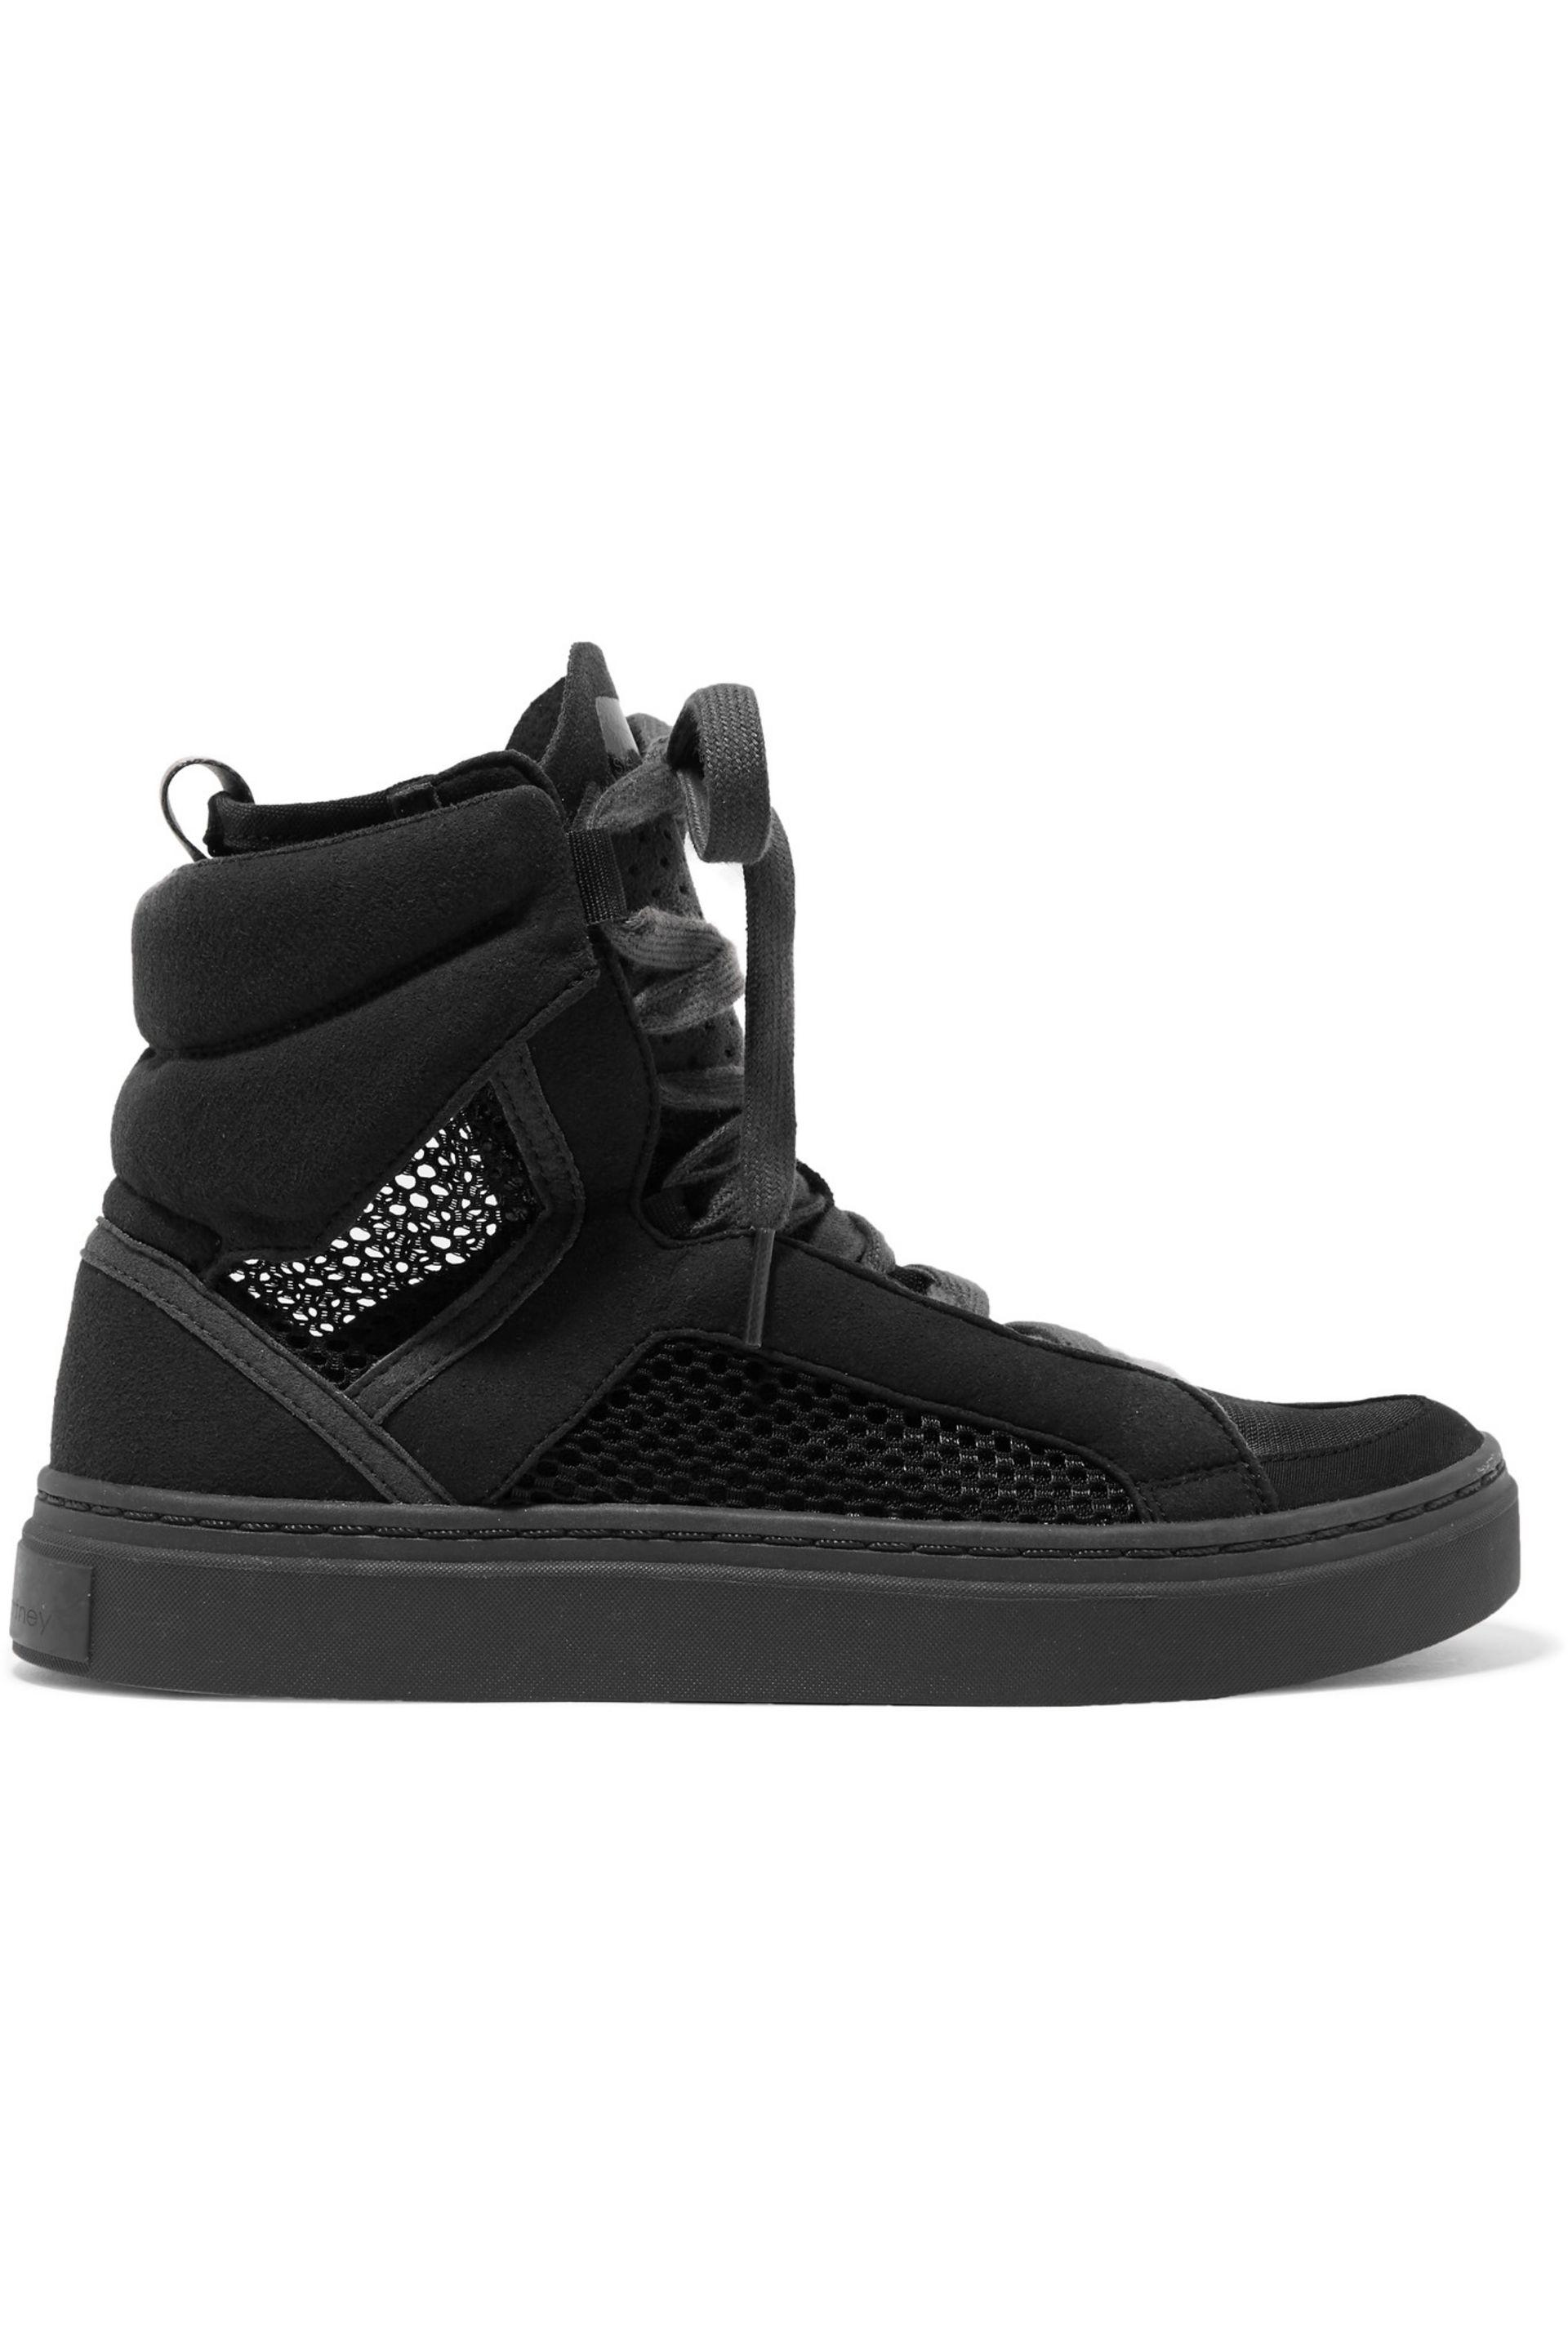 Adidas By Stella Mccartney Mesh And Faux Suede High-Top -1084